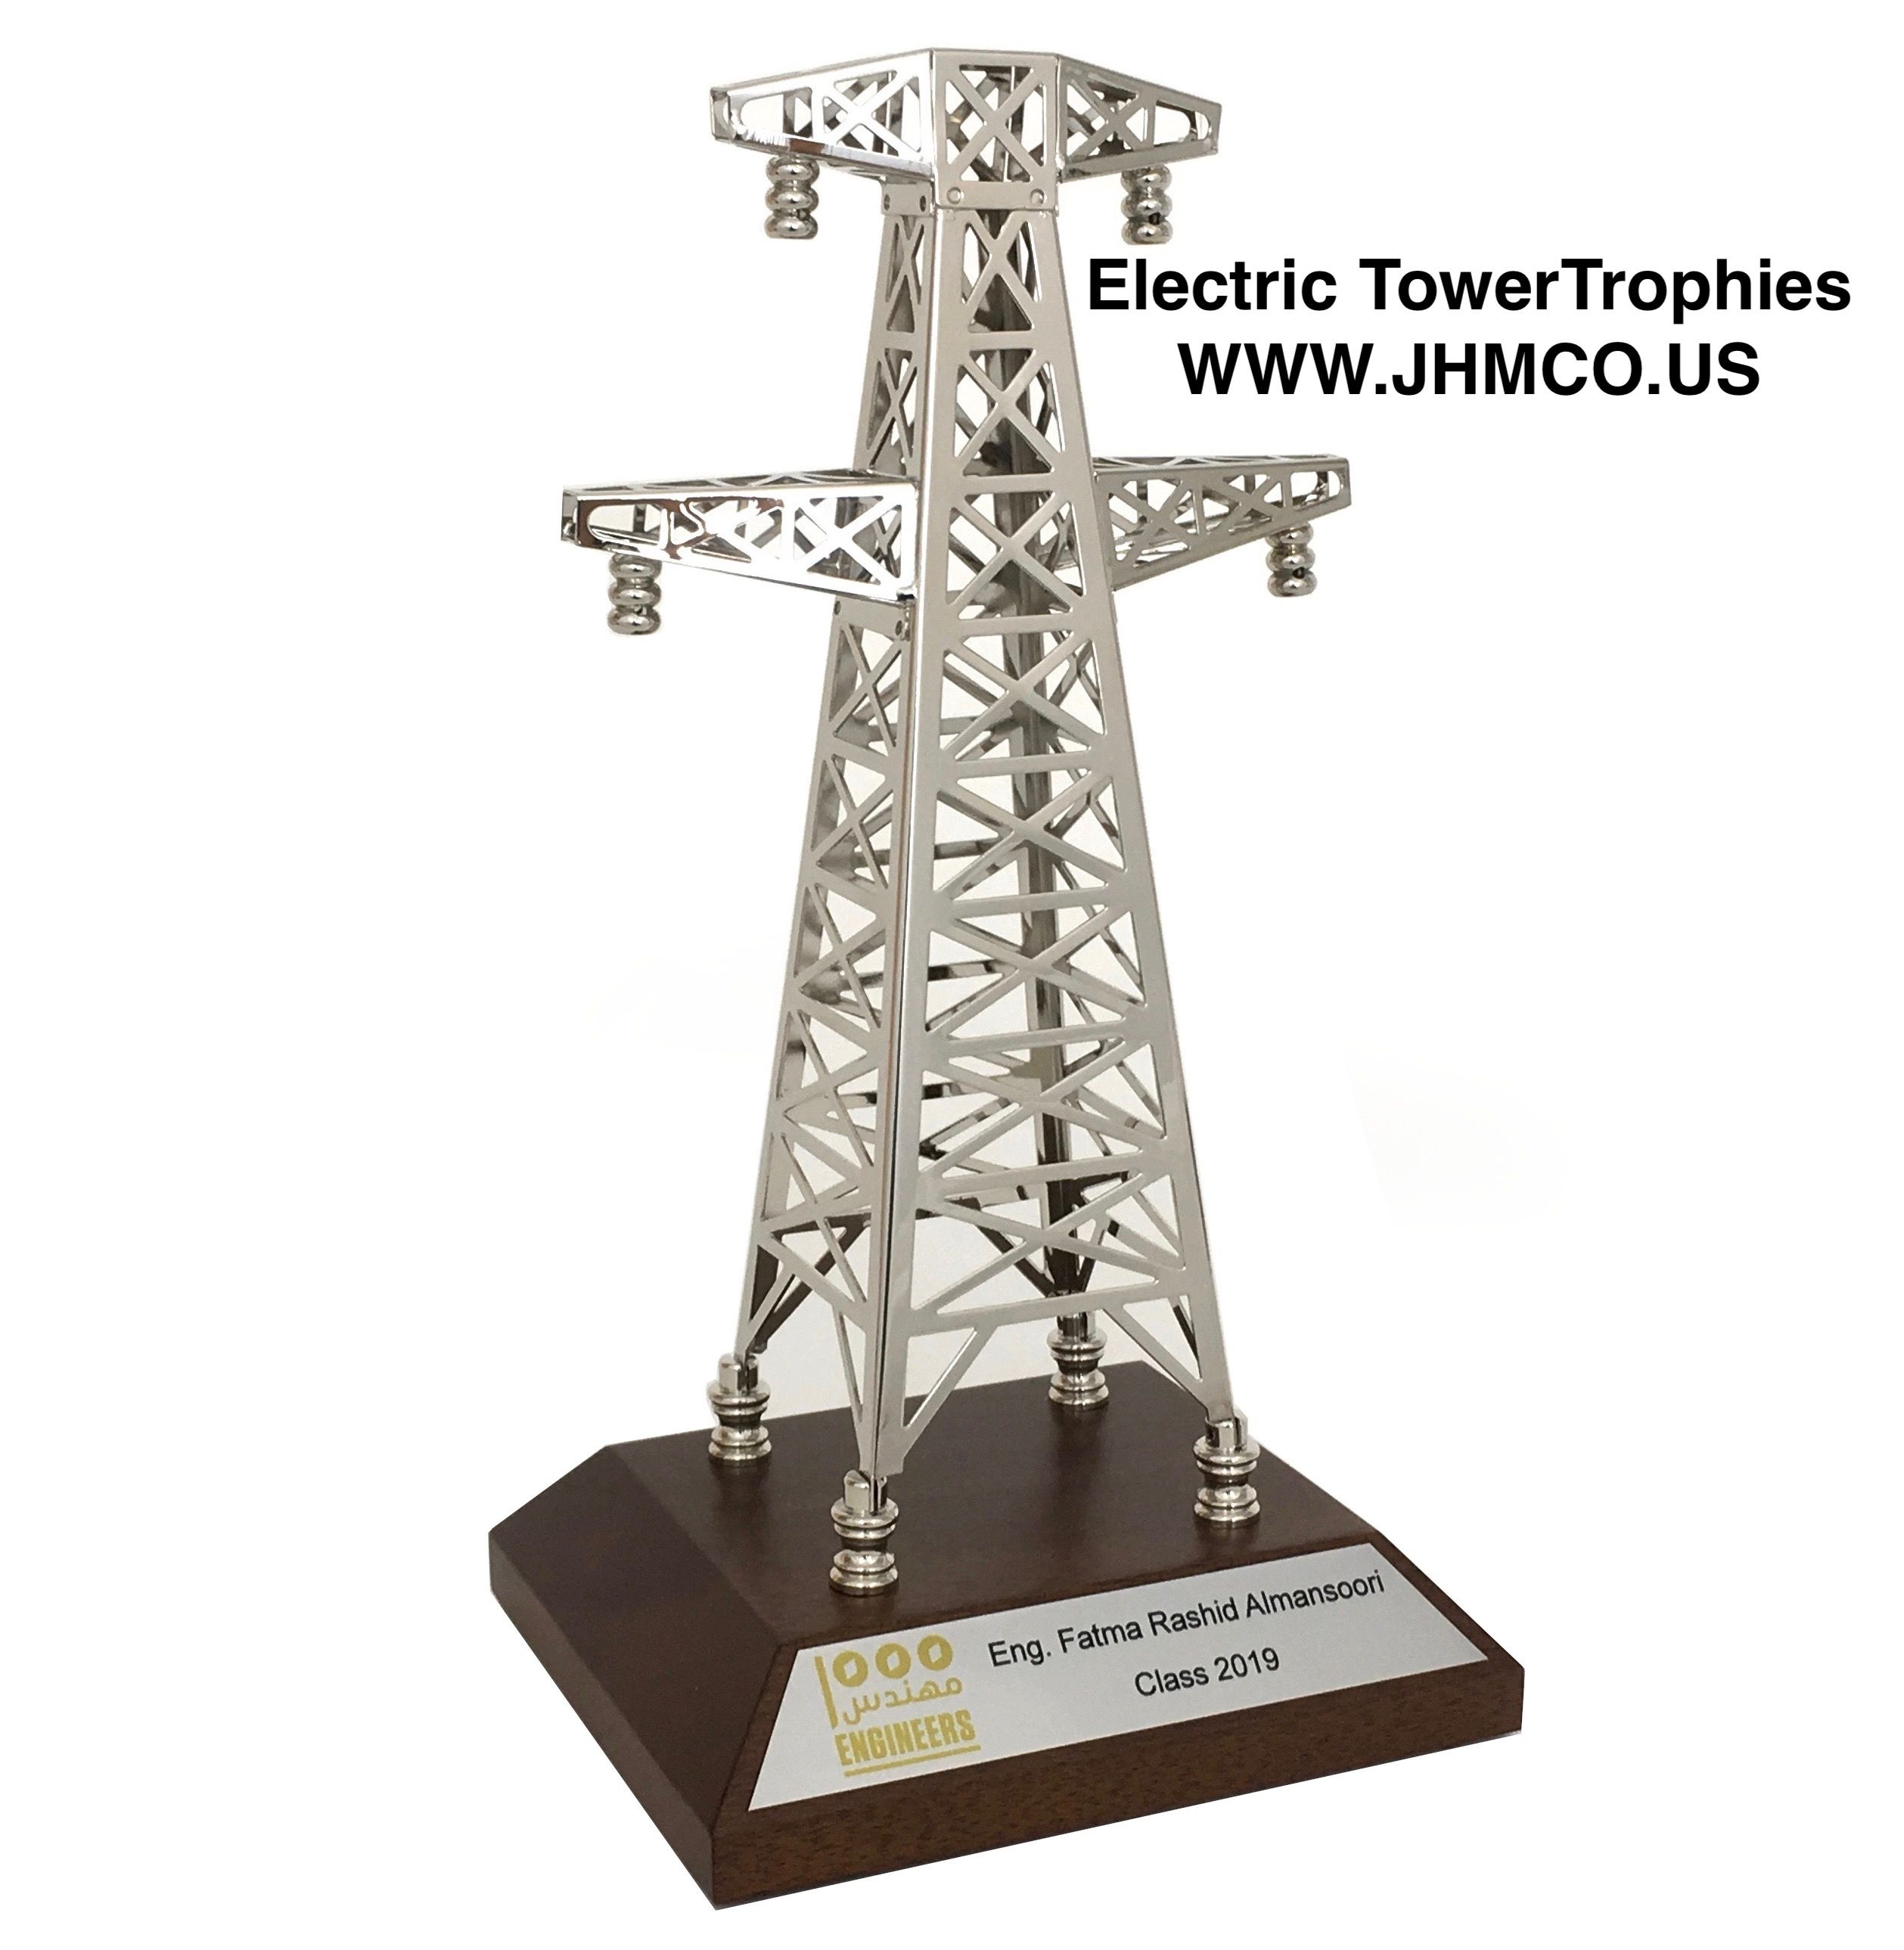 Electric Tower Trophy Awards For Duke Energy Pacific Gas Electric Southern California Edison Transmission Tower Electricity Gas And Electric